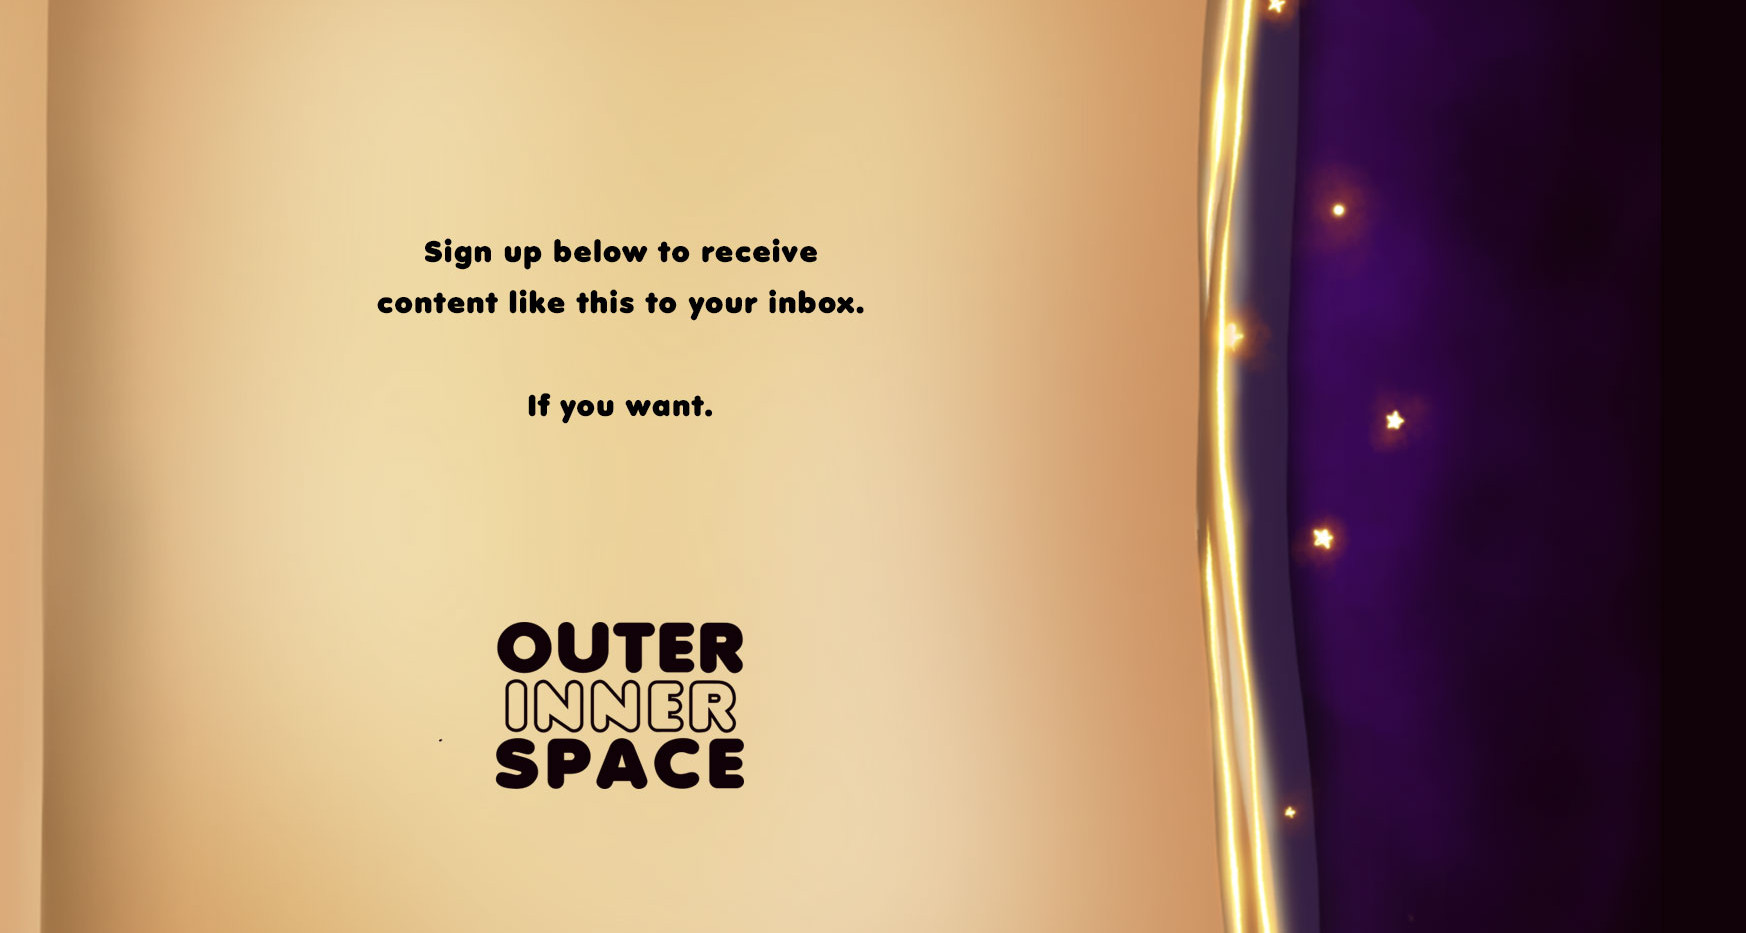 Outer Inner Space